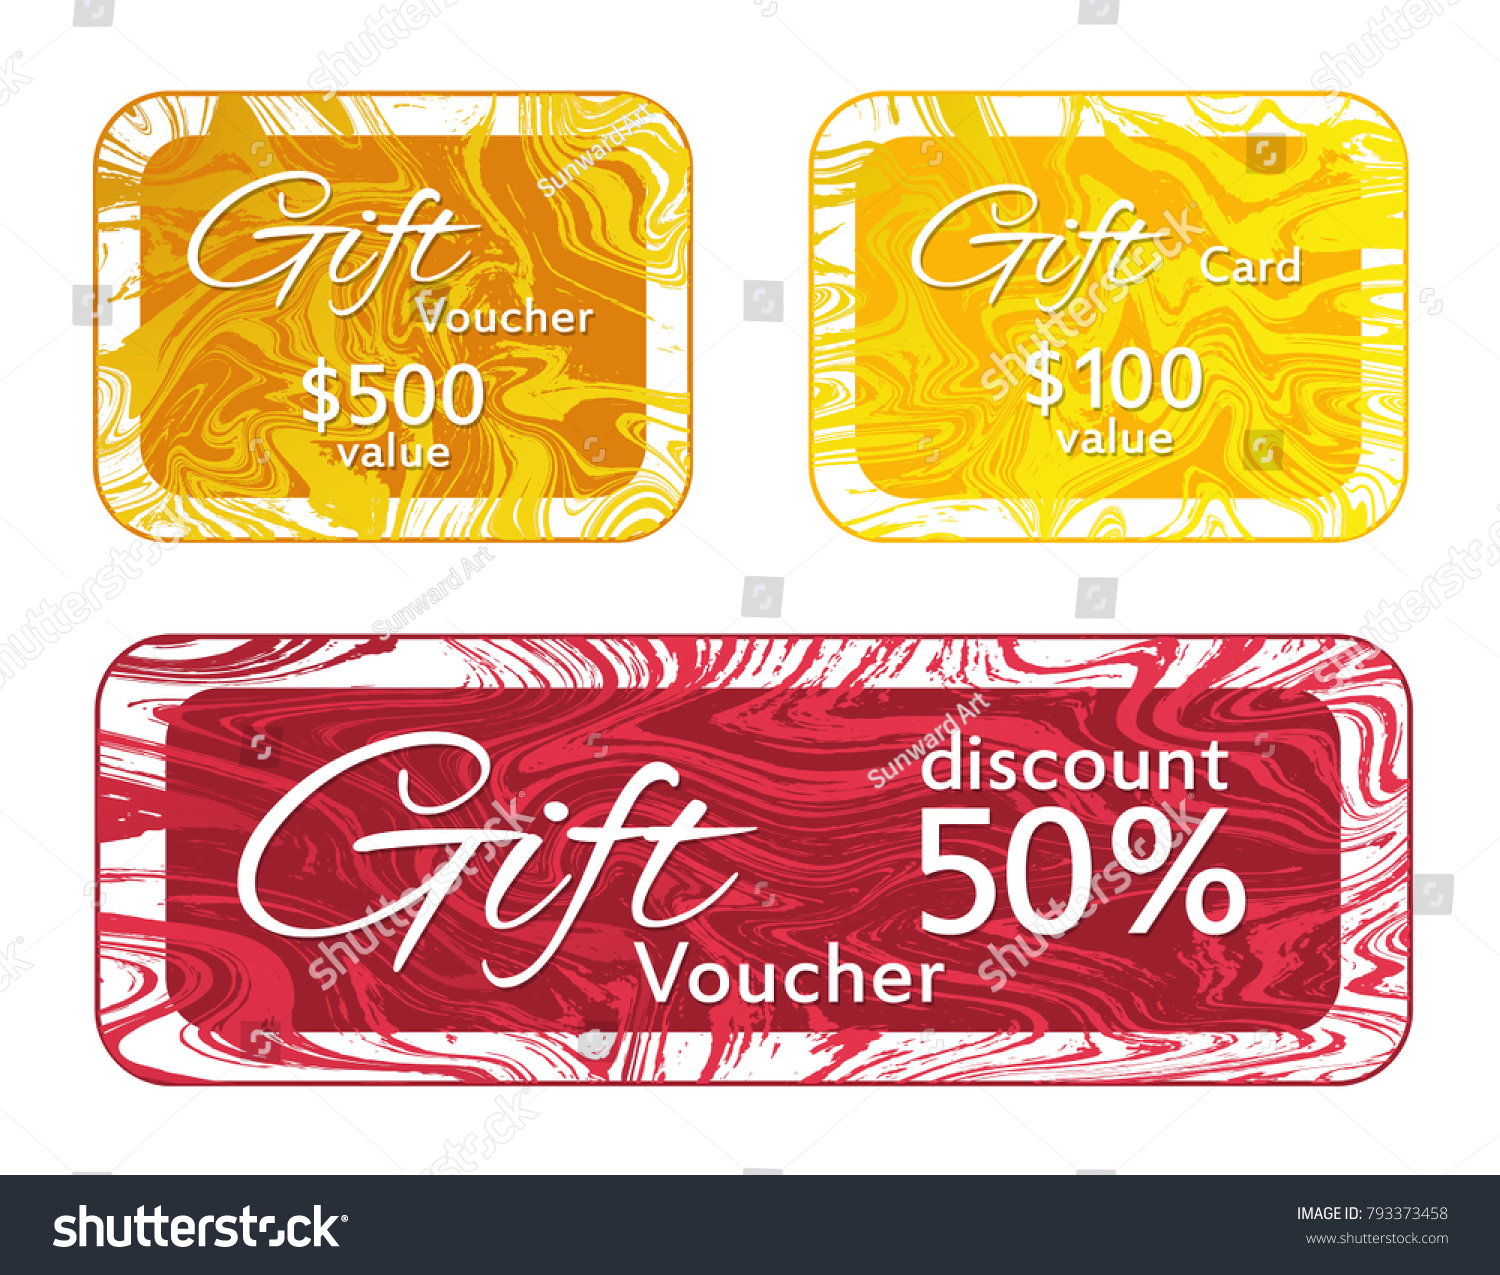 Gift Voucher Card Templates Vector Set Stock Photo (Photo, Vector ...